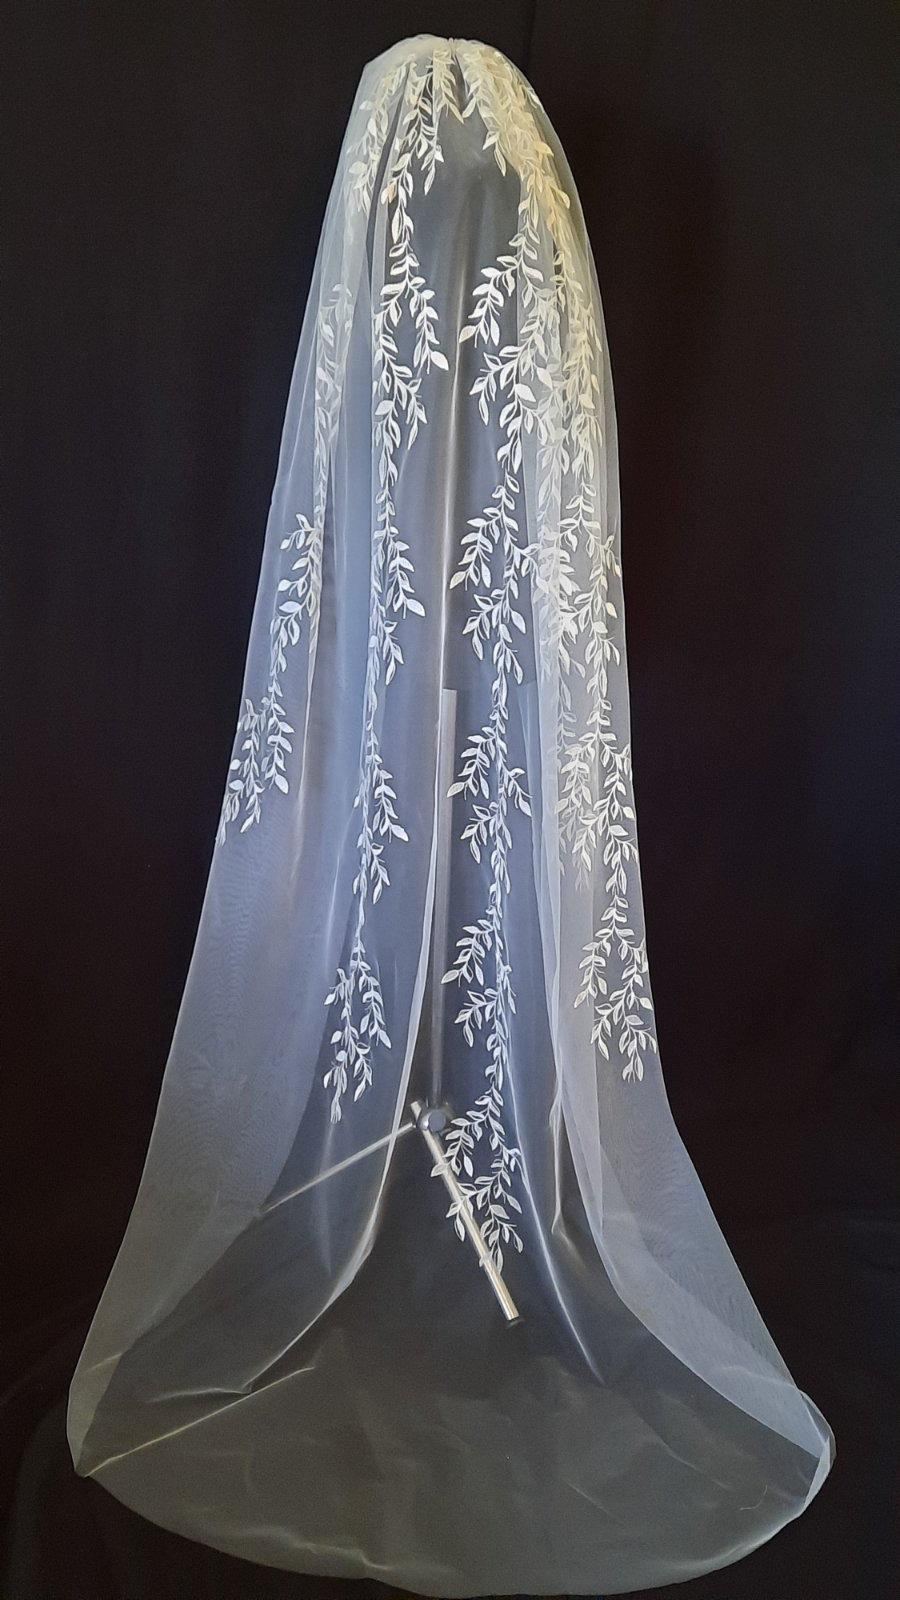 Mariage - Wedding veil with leaves veil lace veil bridal cathedral veil soft tulle veil for bride chapel length lace veil boho veil wedding veil 1tier